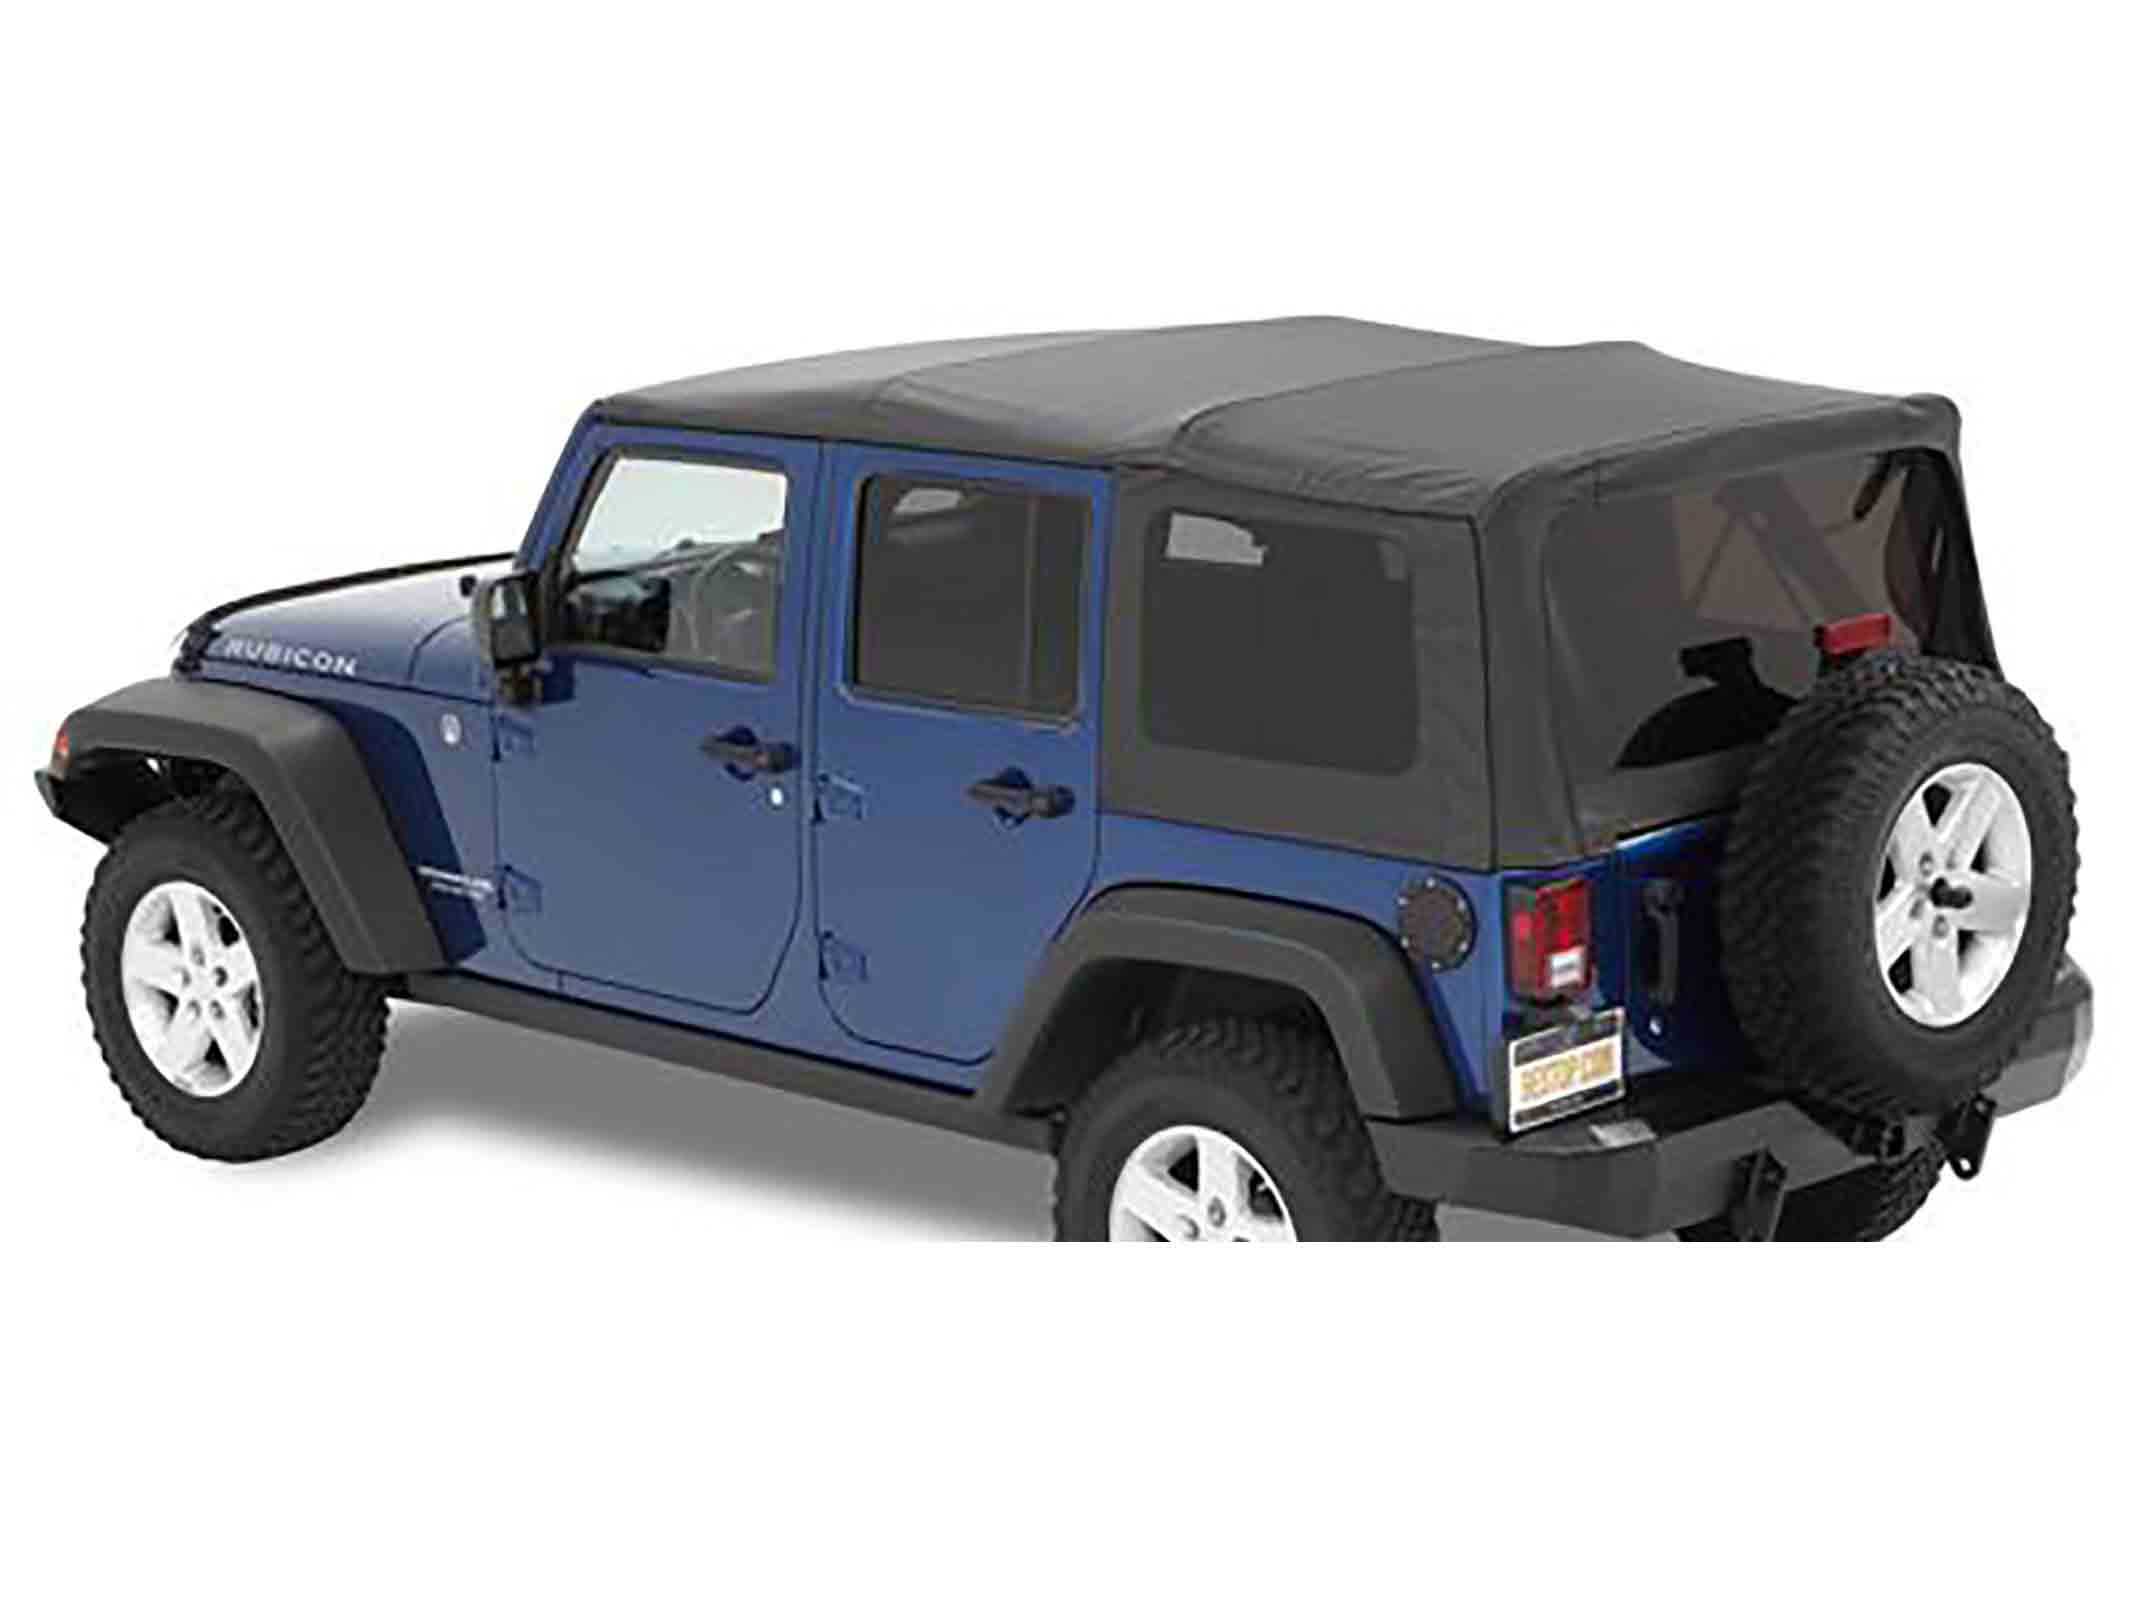 Supertop wrangler jk unlimited 07 18 nx factory style ricambi jeep